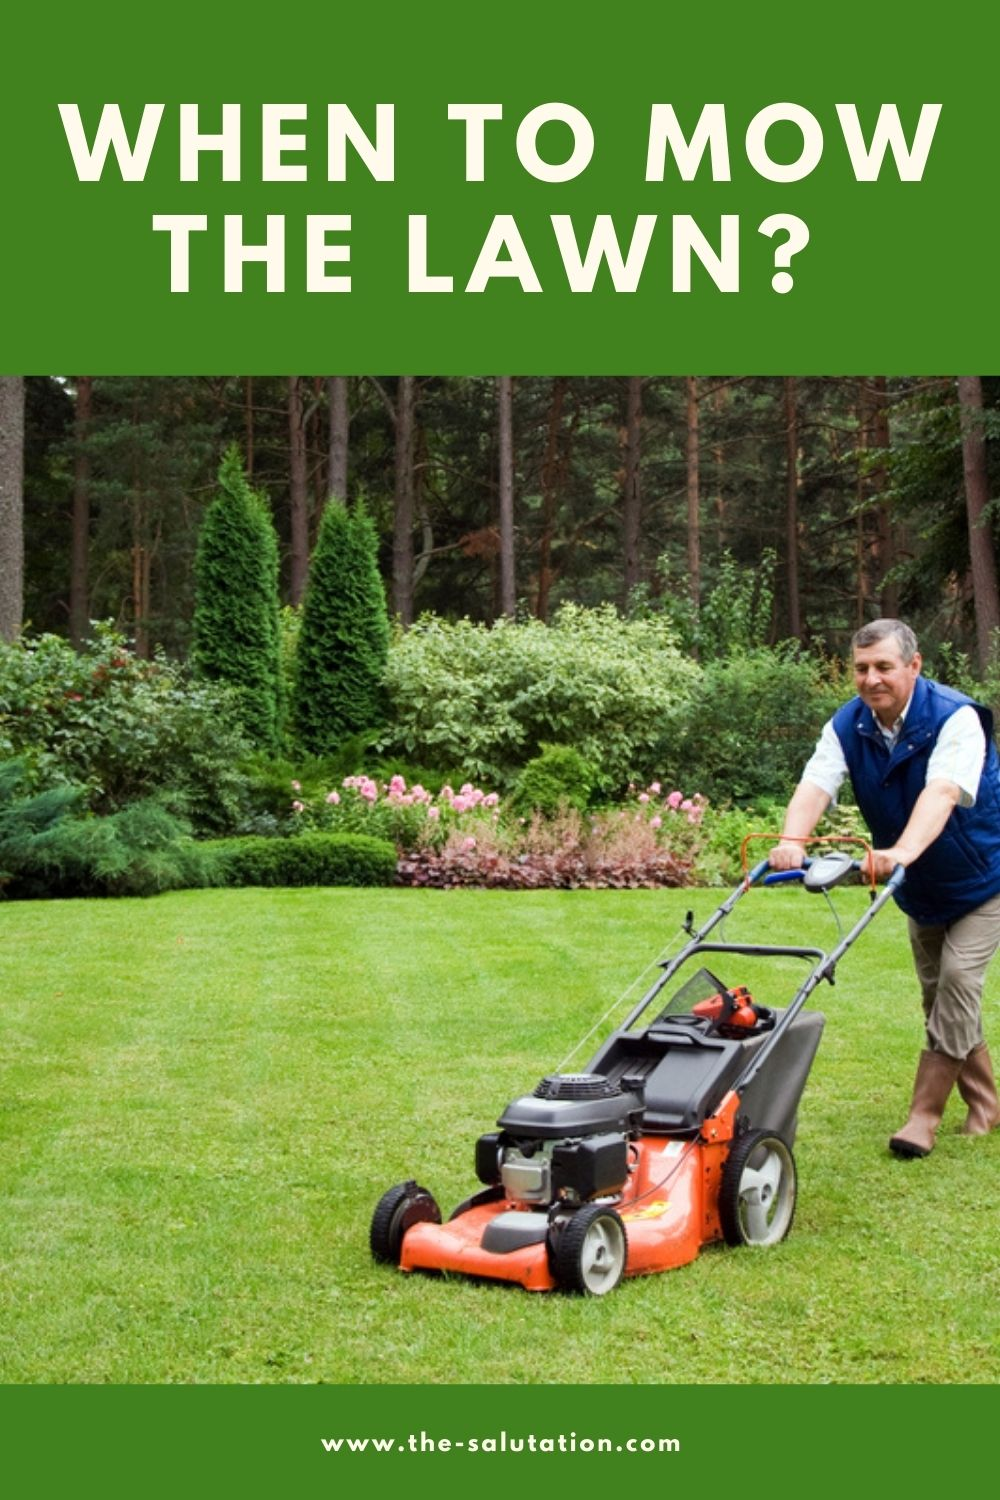 When to Mow the Lawn (7 Tips) 2